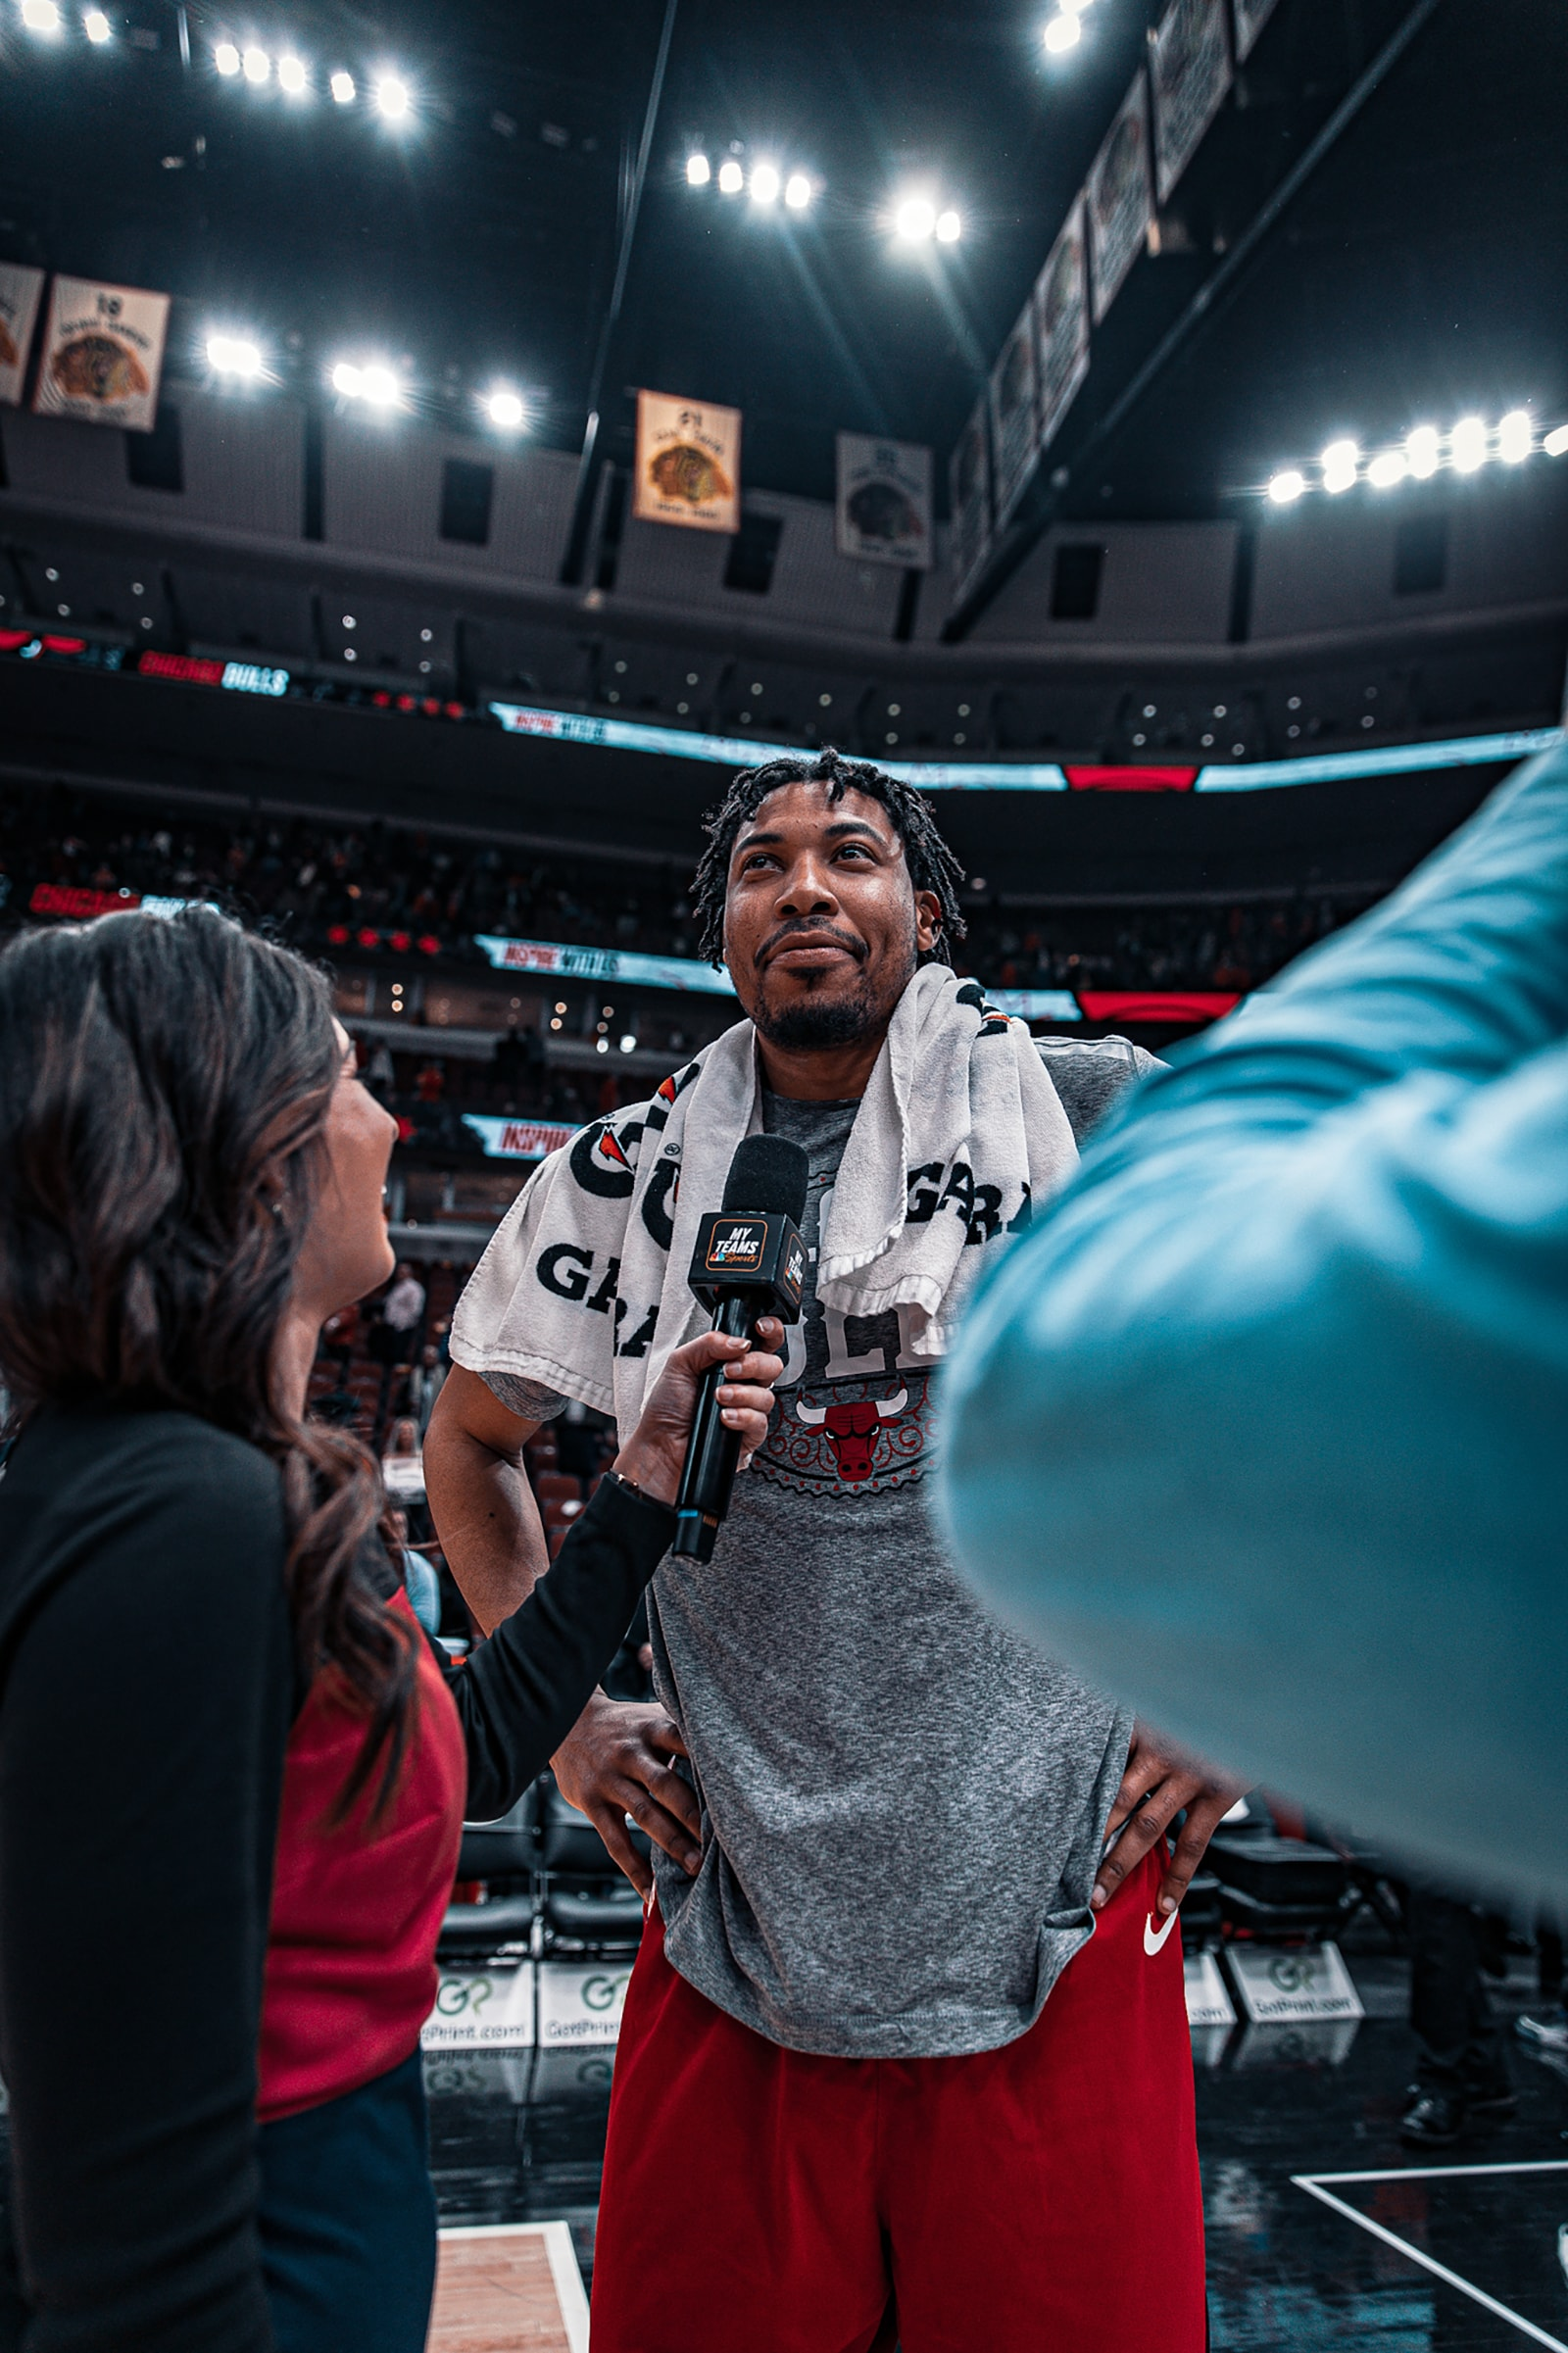 OPJ hgives an interview after the game